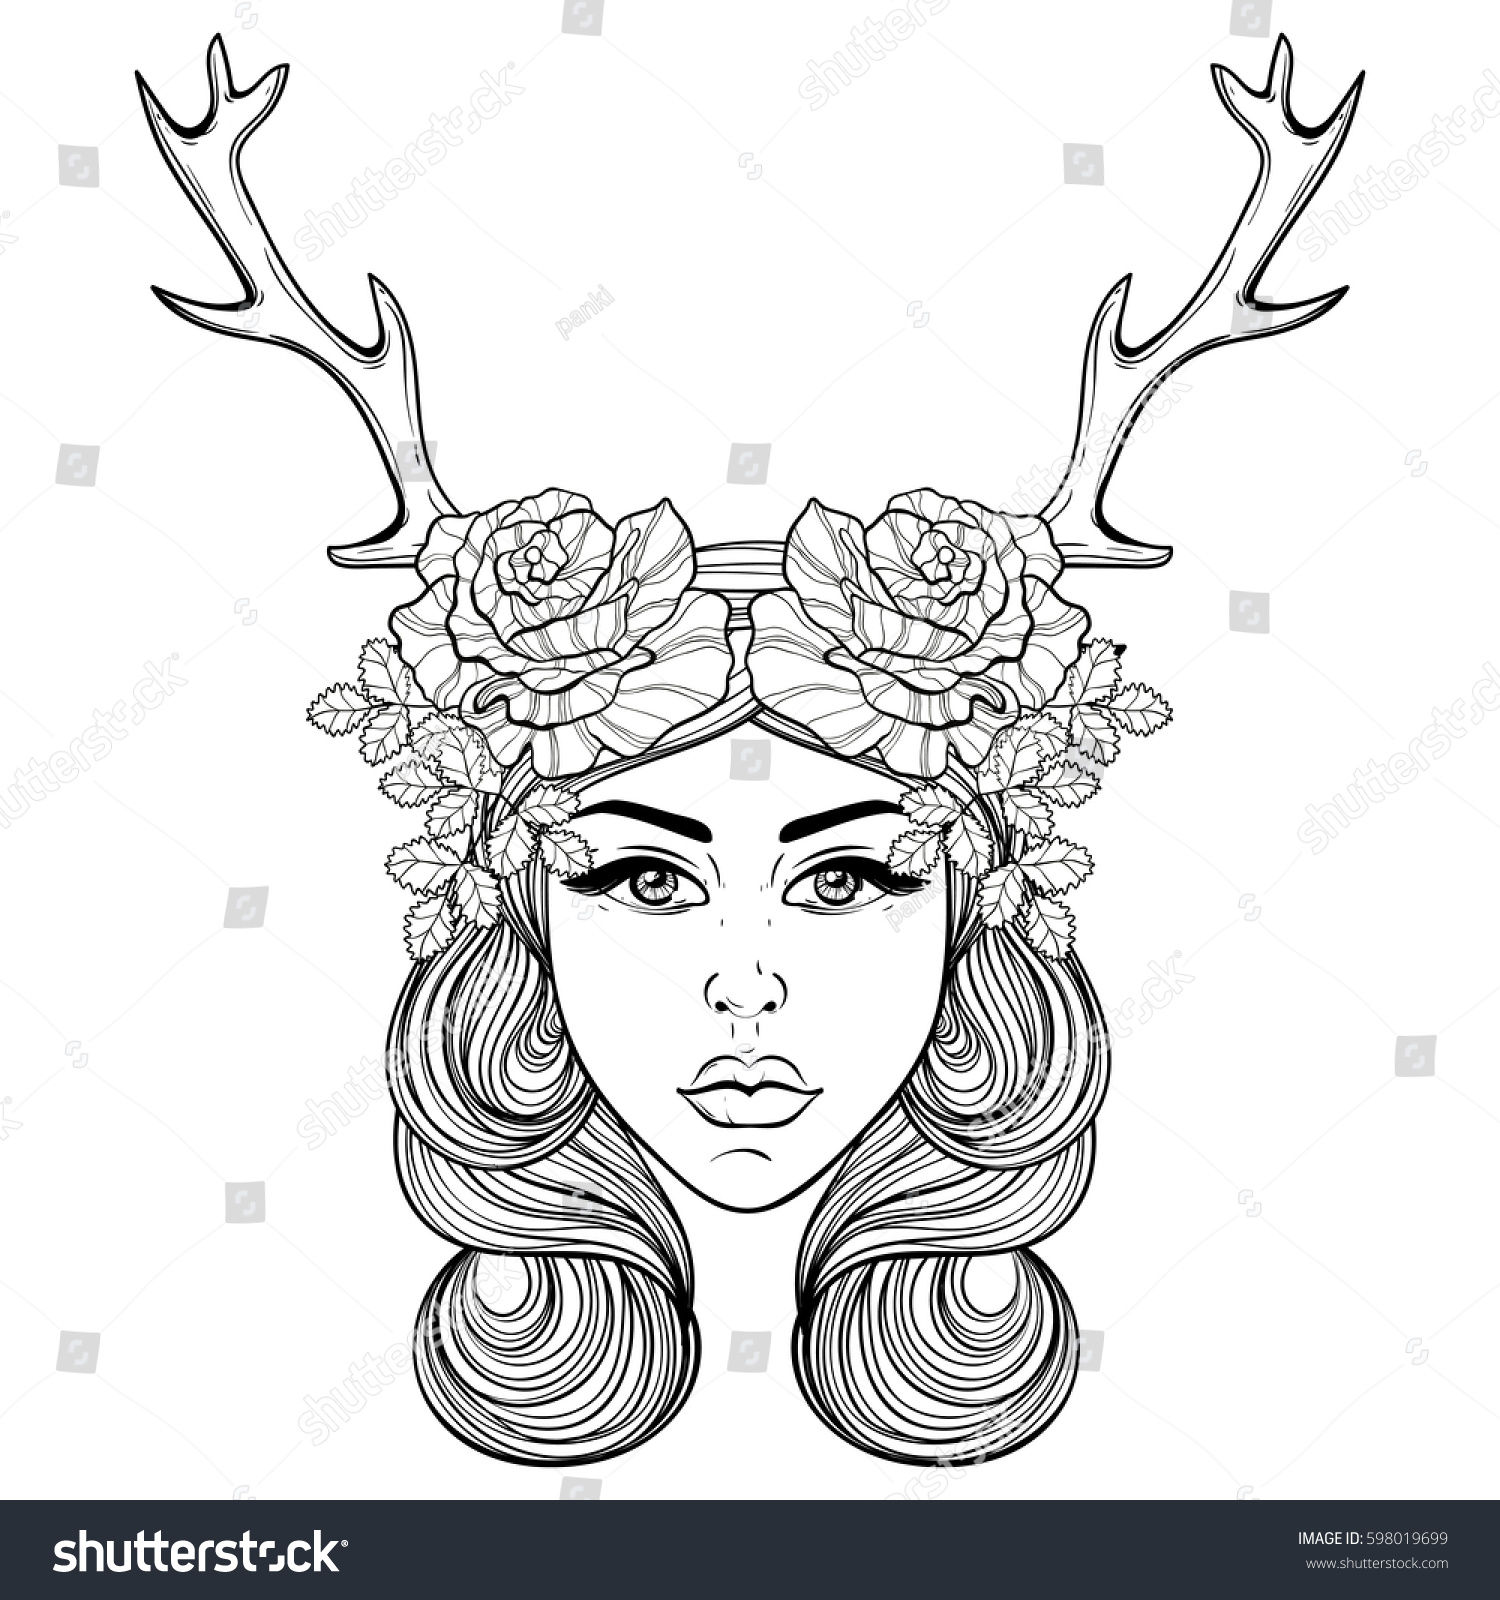 Royalty Free Beautiful Girl With Deers Horns Like 598019699 Stock